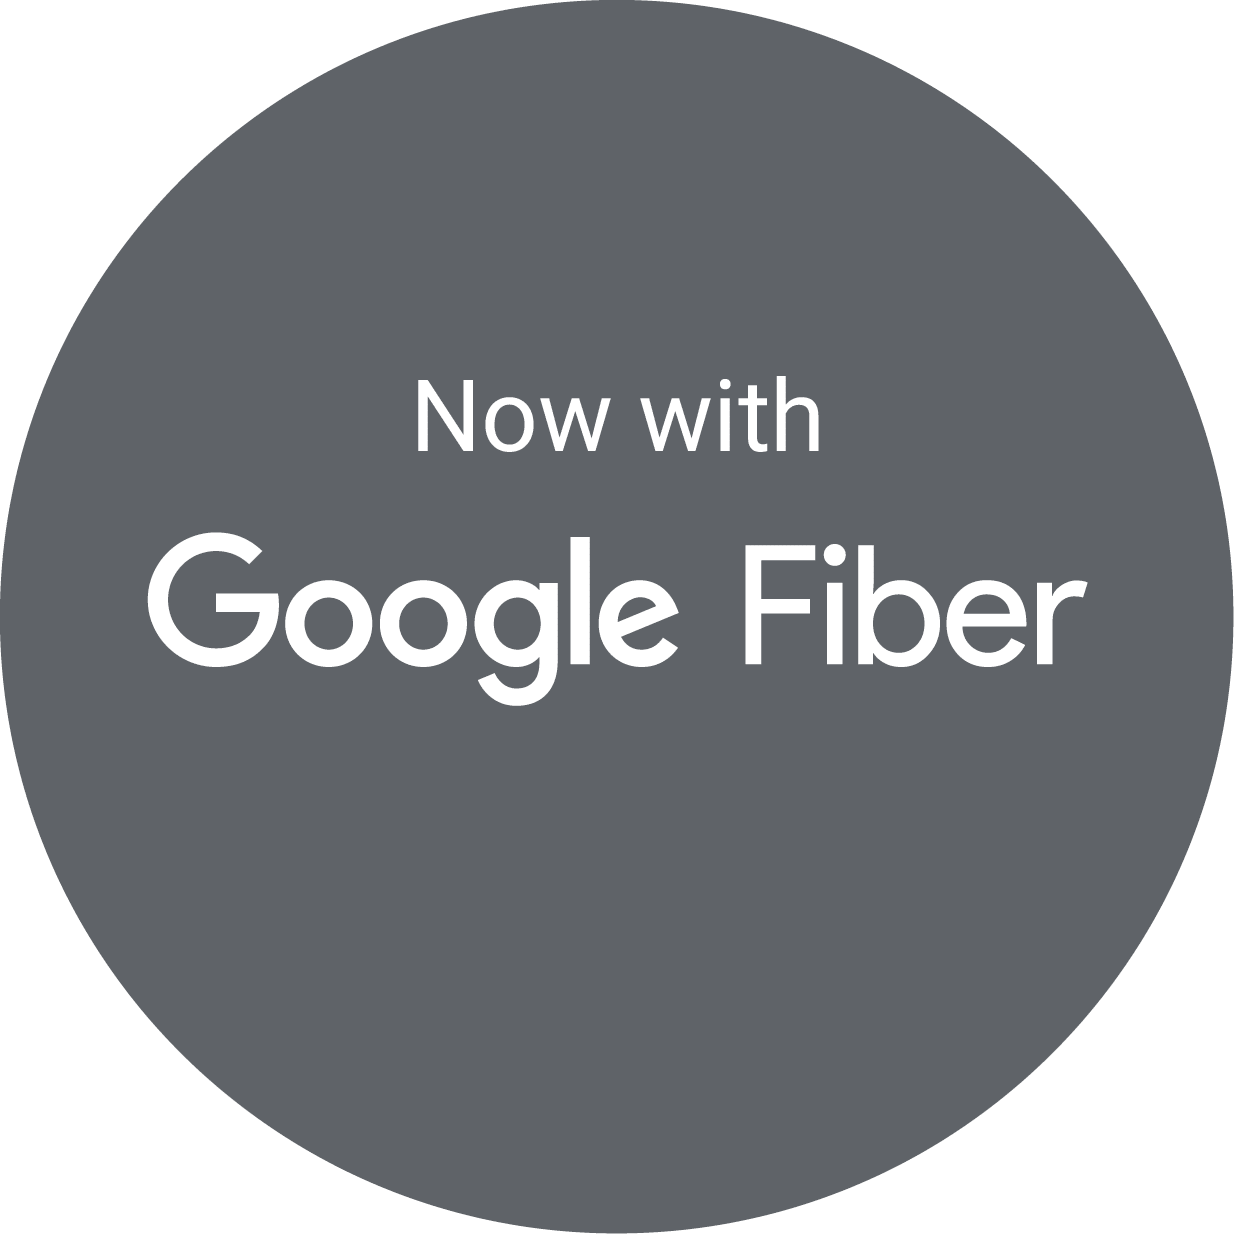 Now with Google Fiber